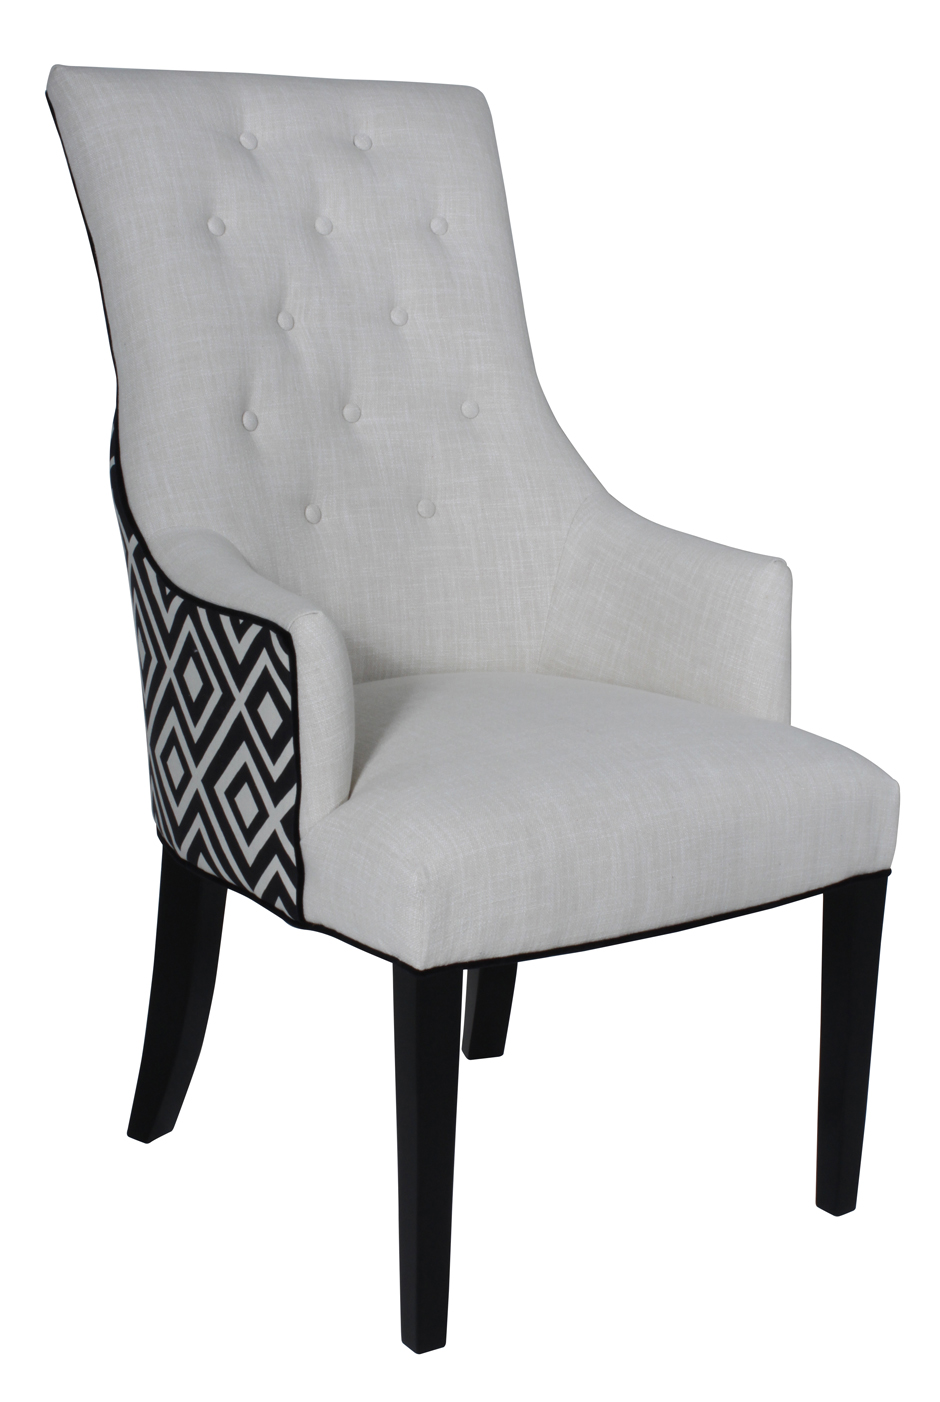 Brentwood_Chair